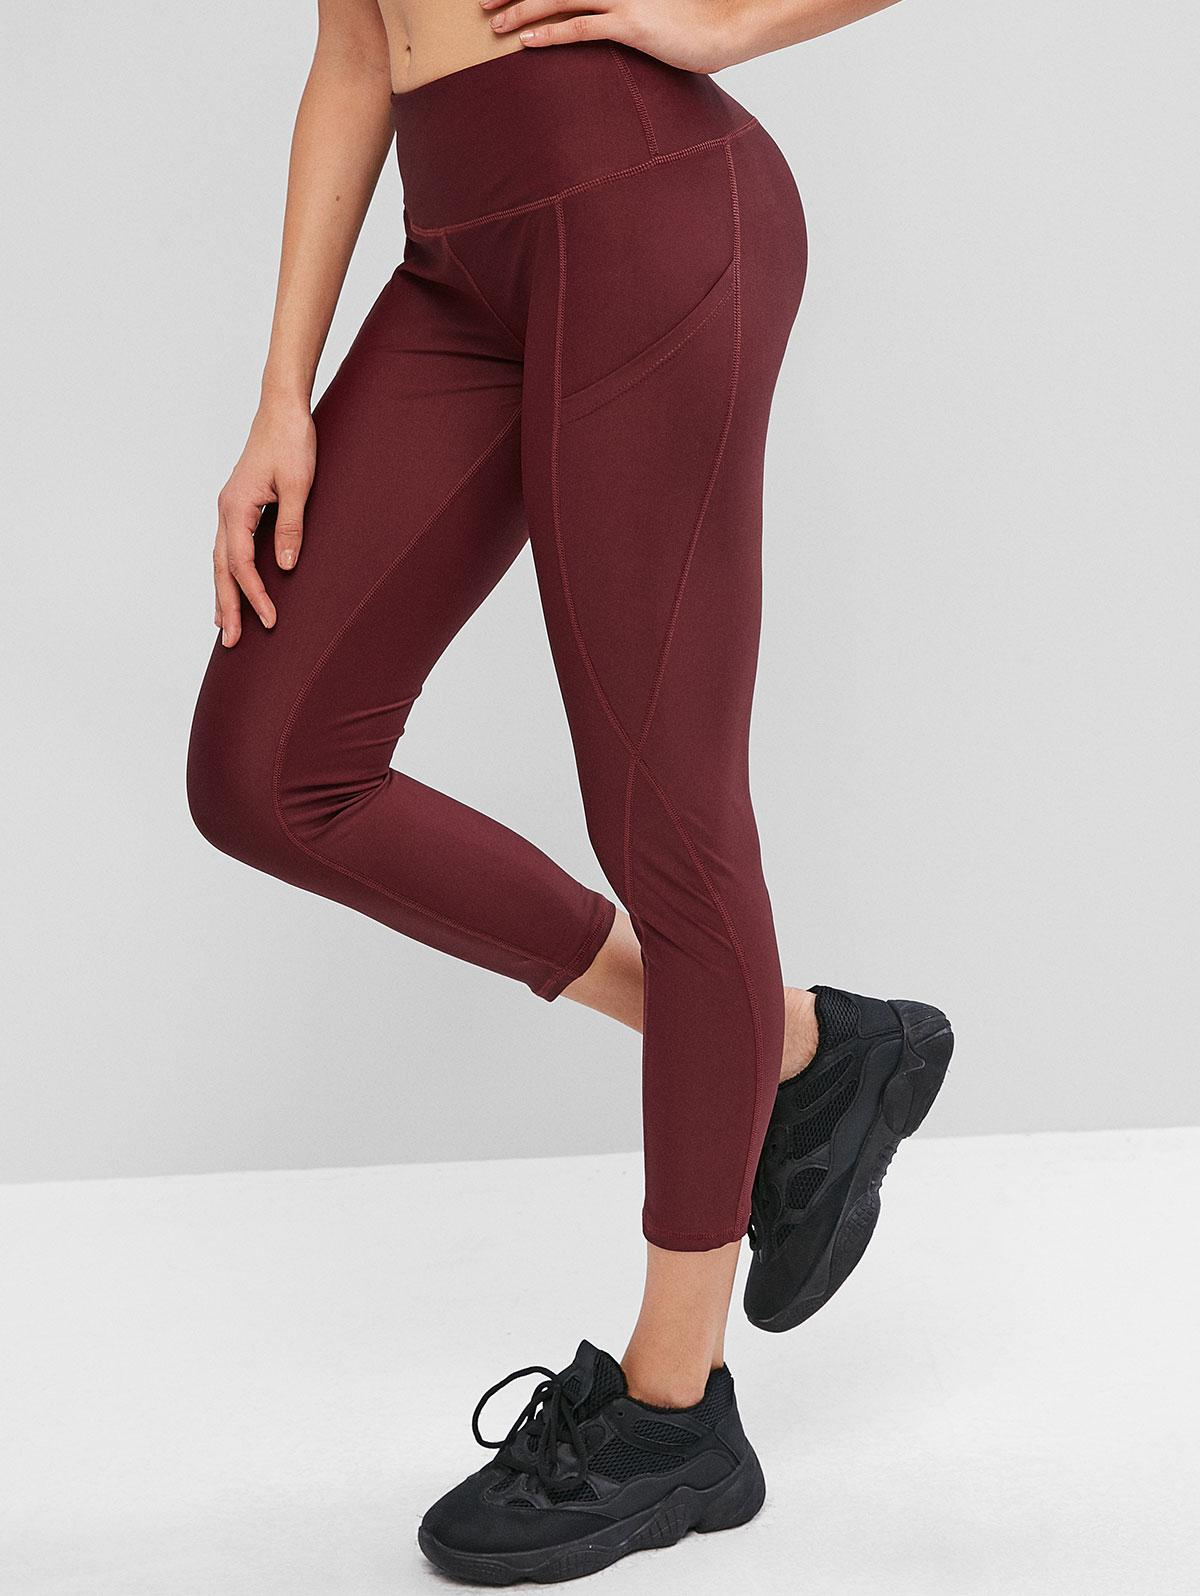 High Waisted Stitching Side Pockets Gym Leggings, Red wine